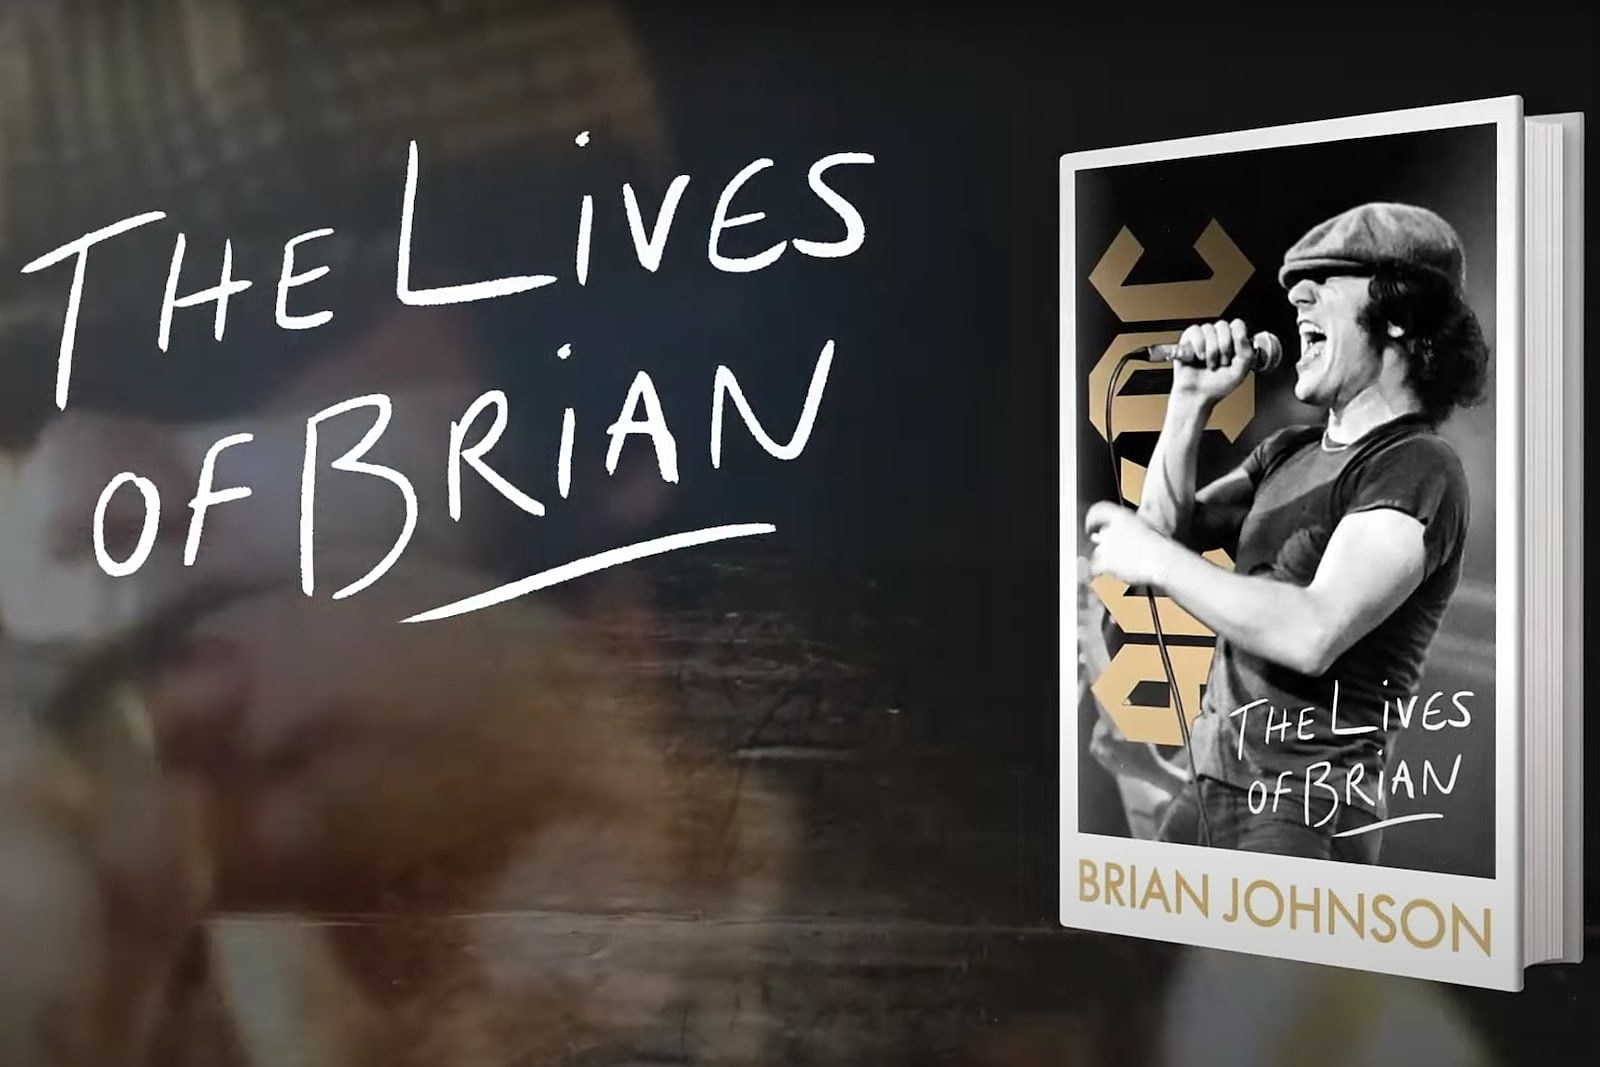 Lives-of-Brian-ACDC-Brian-Johnson-YouTube-Image